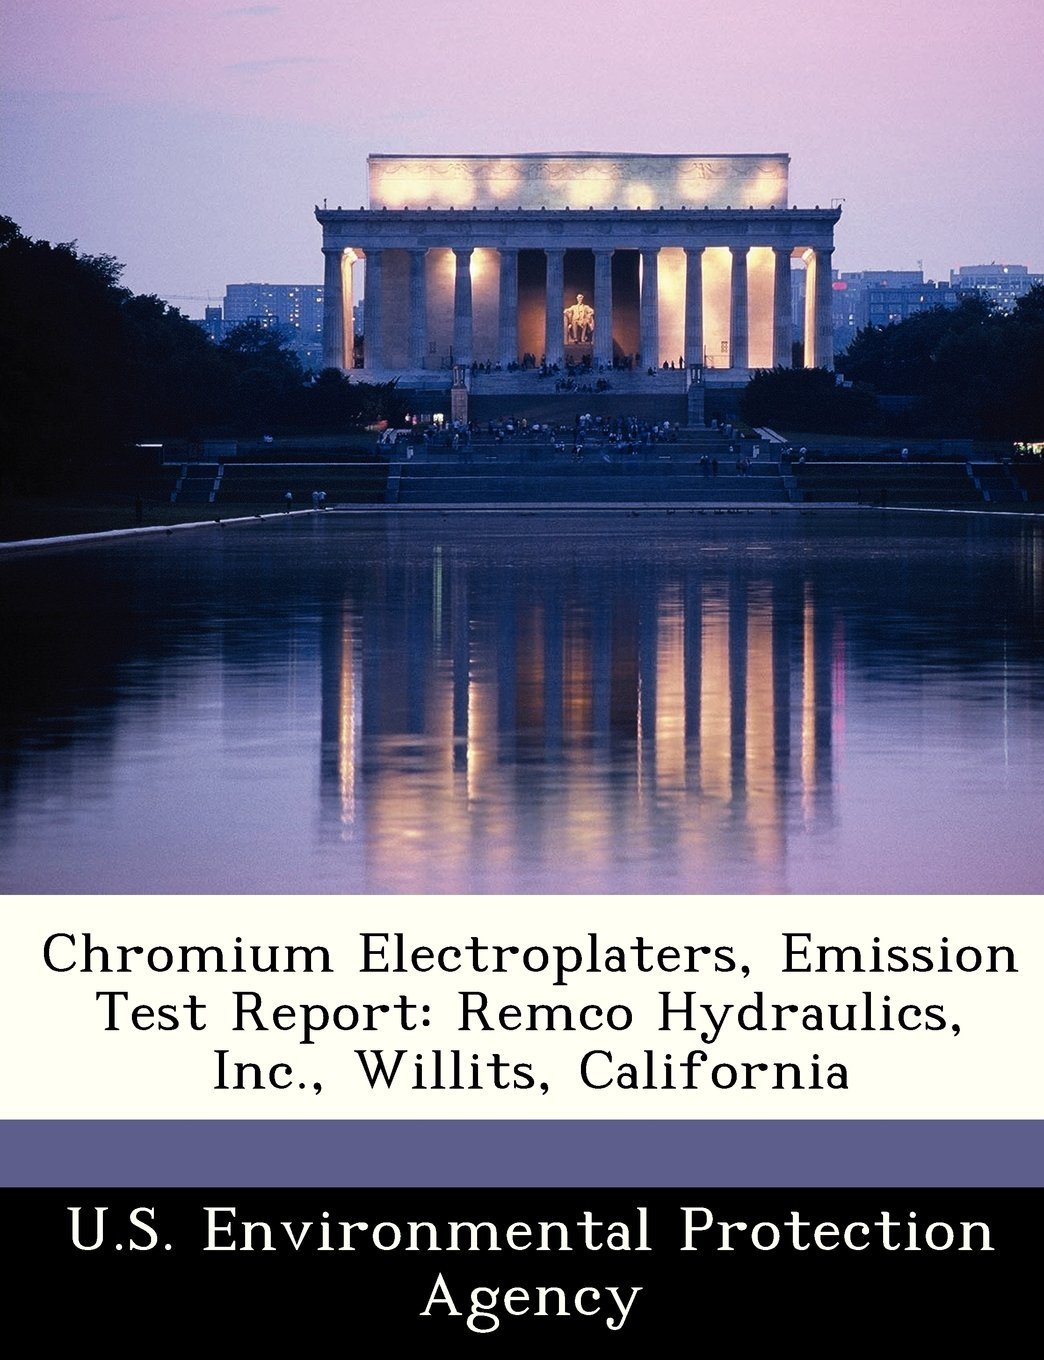 Chromium Electroplaters, Emission Test Report: Remco Hydraulics, Inc., Willits, California PDF